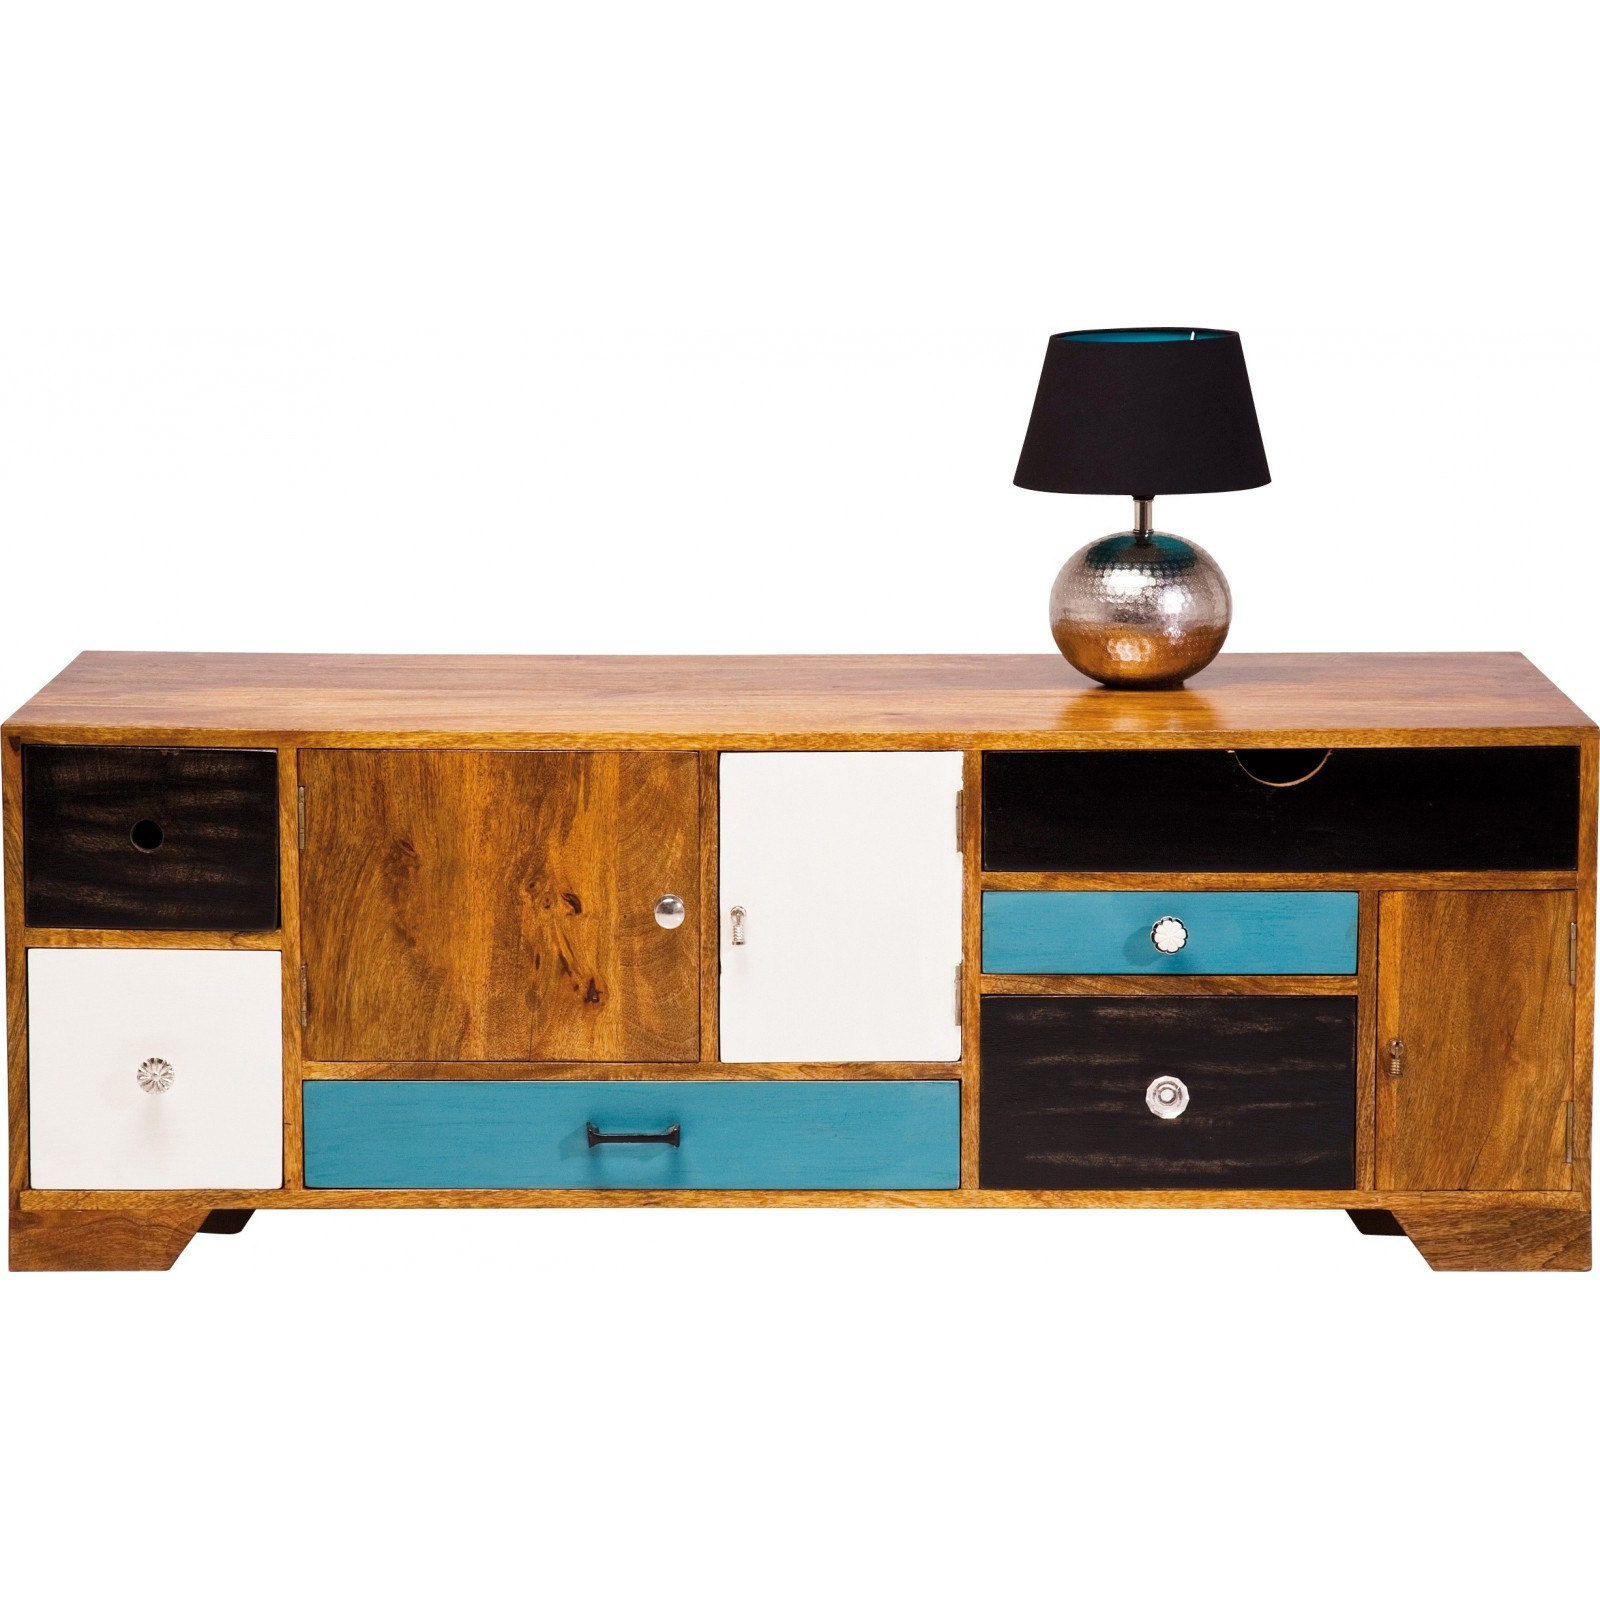 meuble tv en bois babalou 130x50 cm kare design. Black Bedroom Furniture Sets. Home Design Ideas